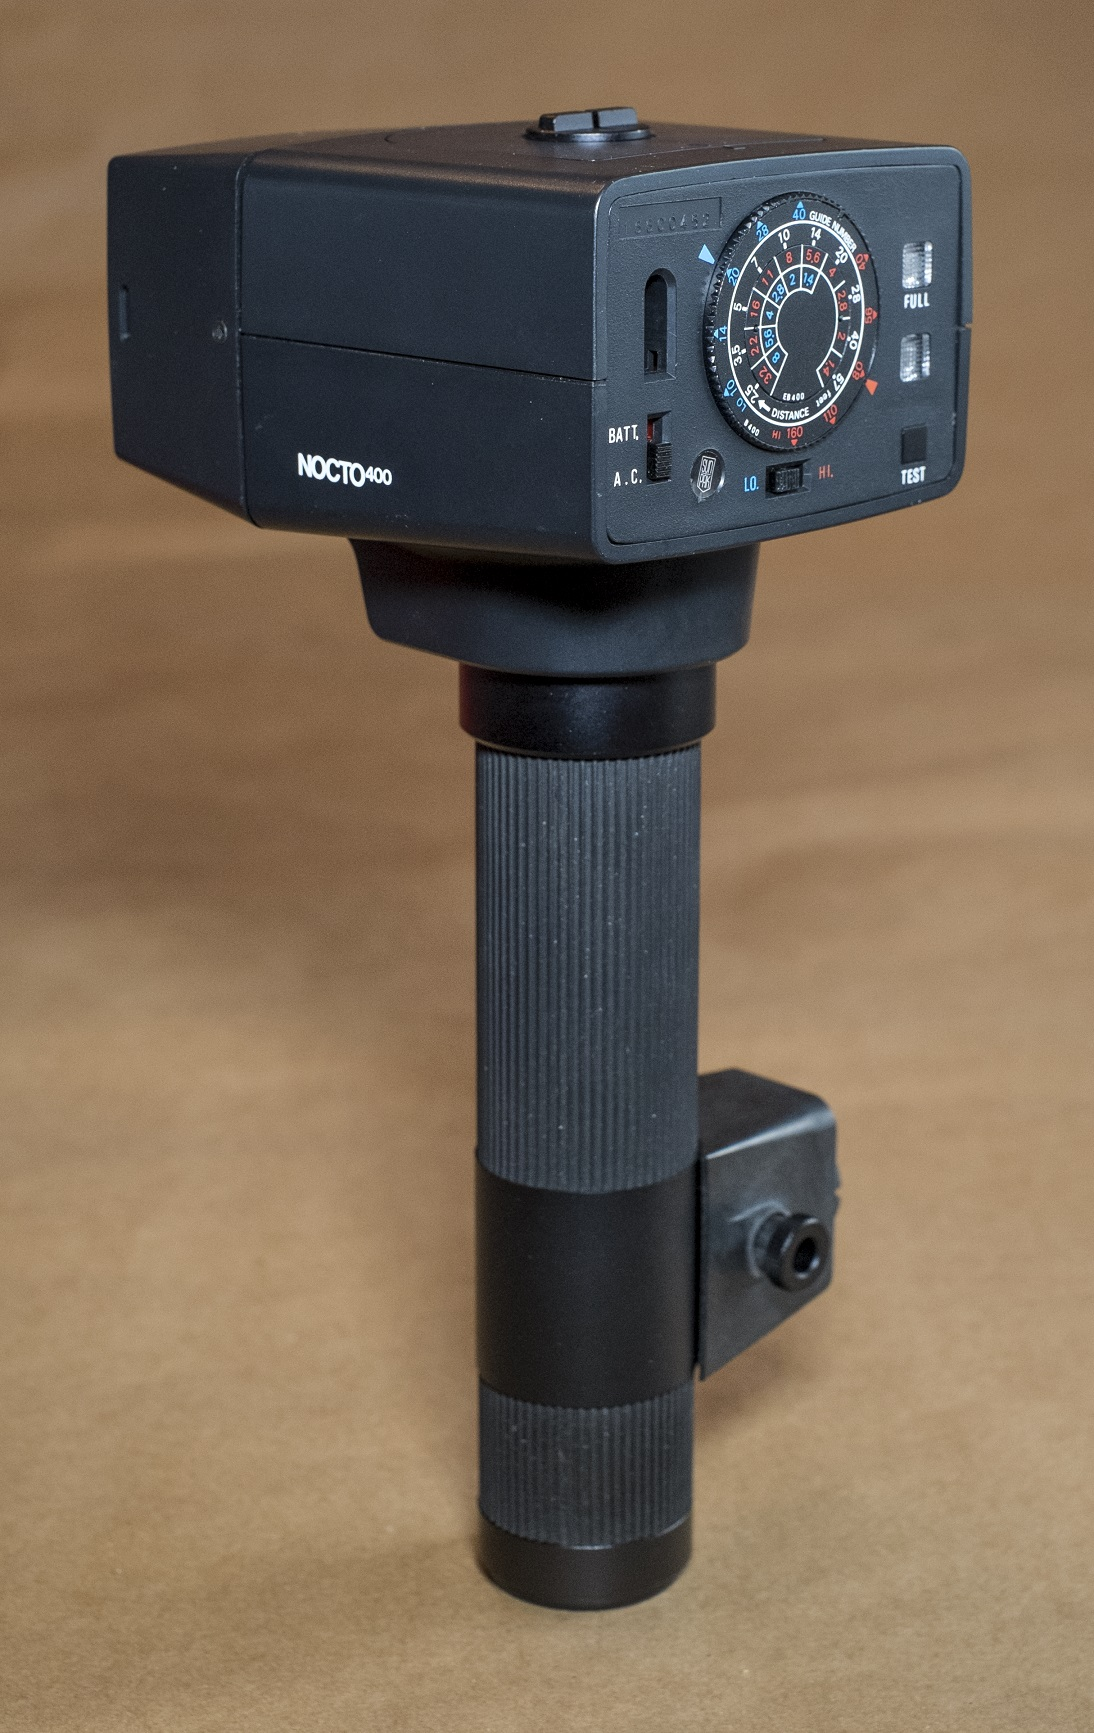 sunpak-nocto-400-infrared-strobe-rear-view-2-d-teoli-jr